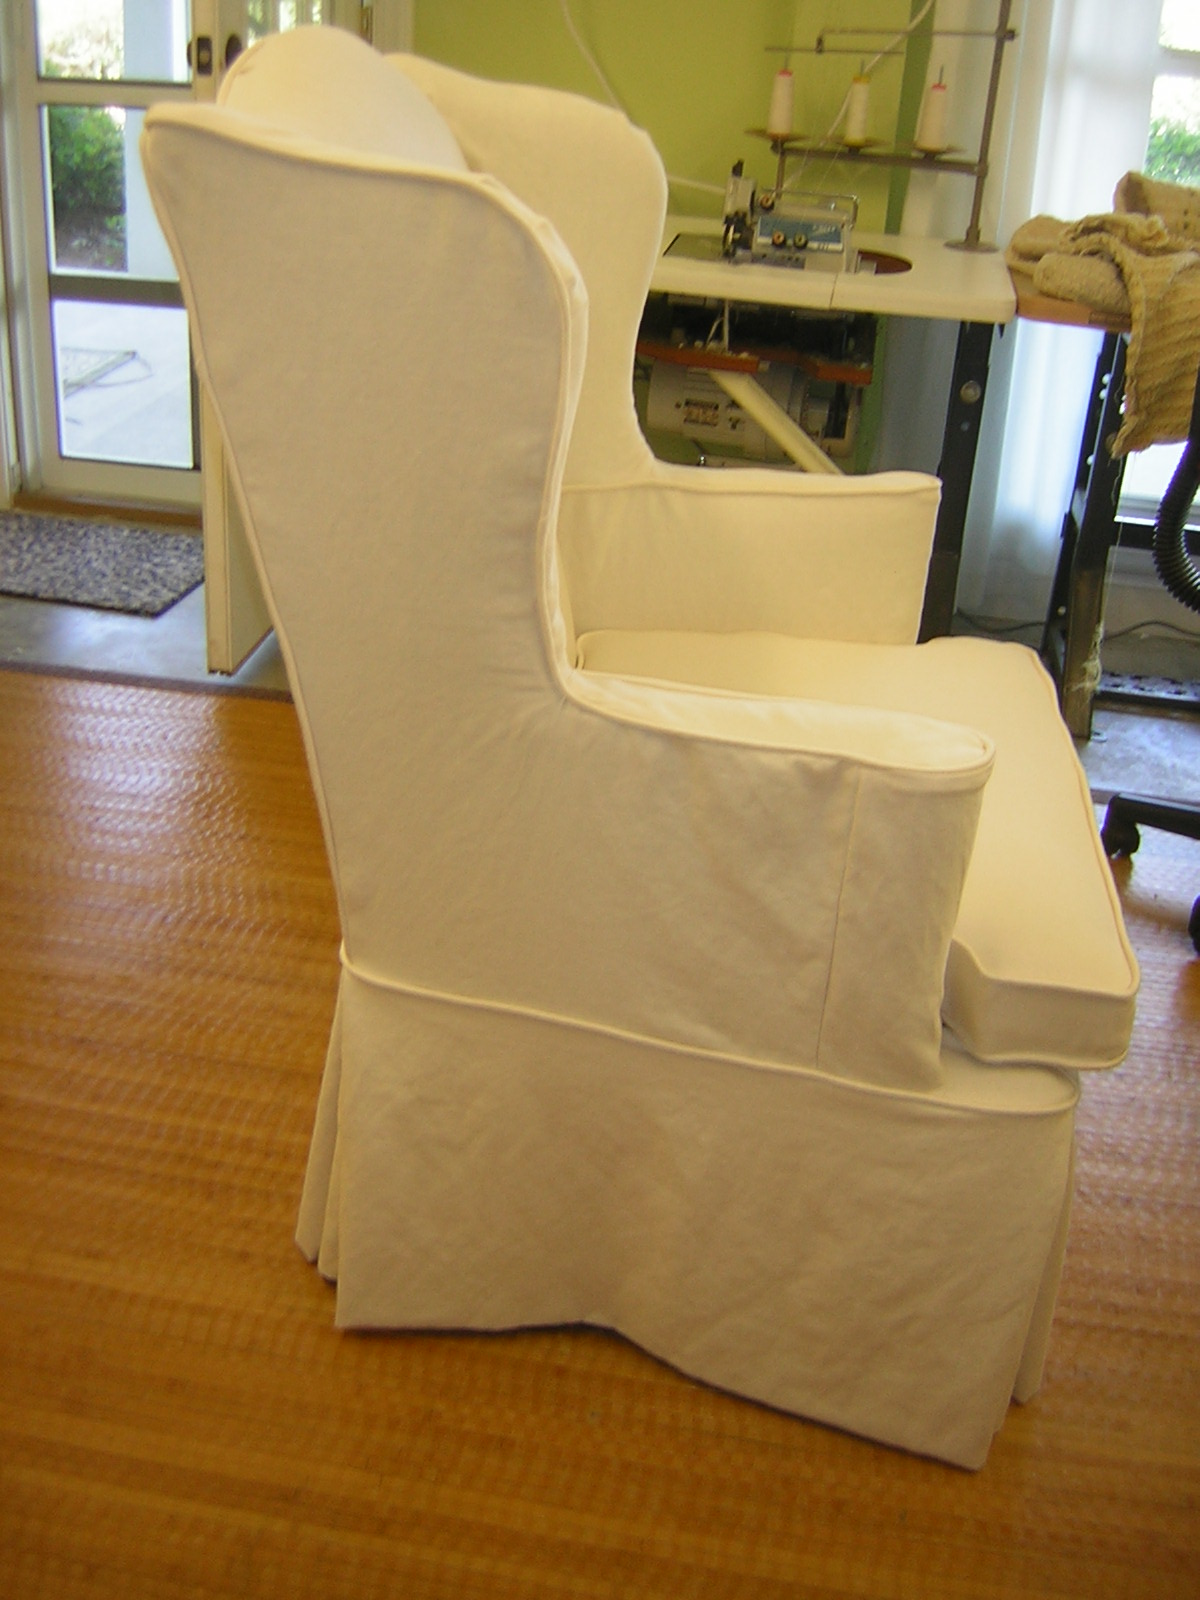 Should I Get Chair Covers For My Wedding Convertible Ottoman Slipcover Chic A Wing And Skirt